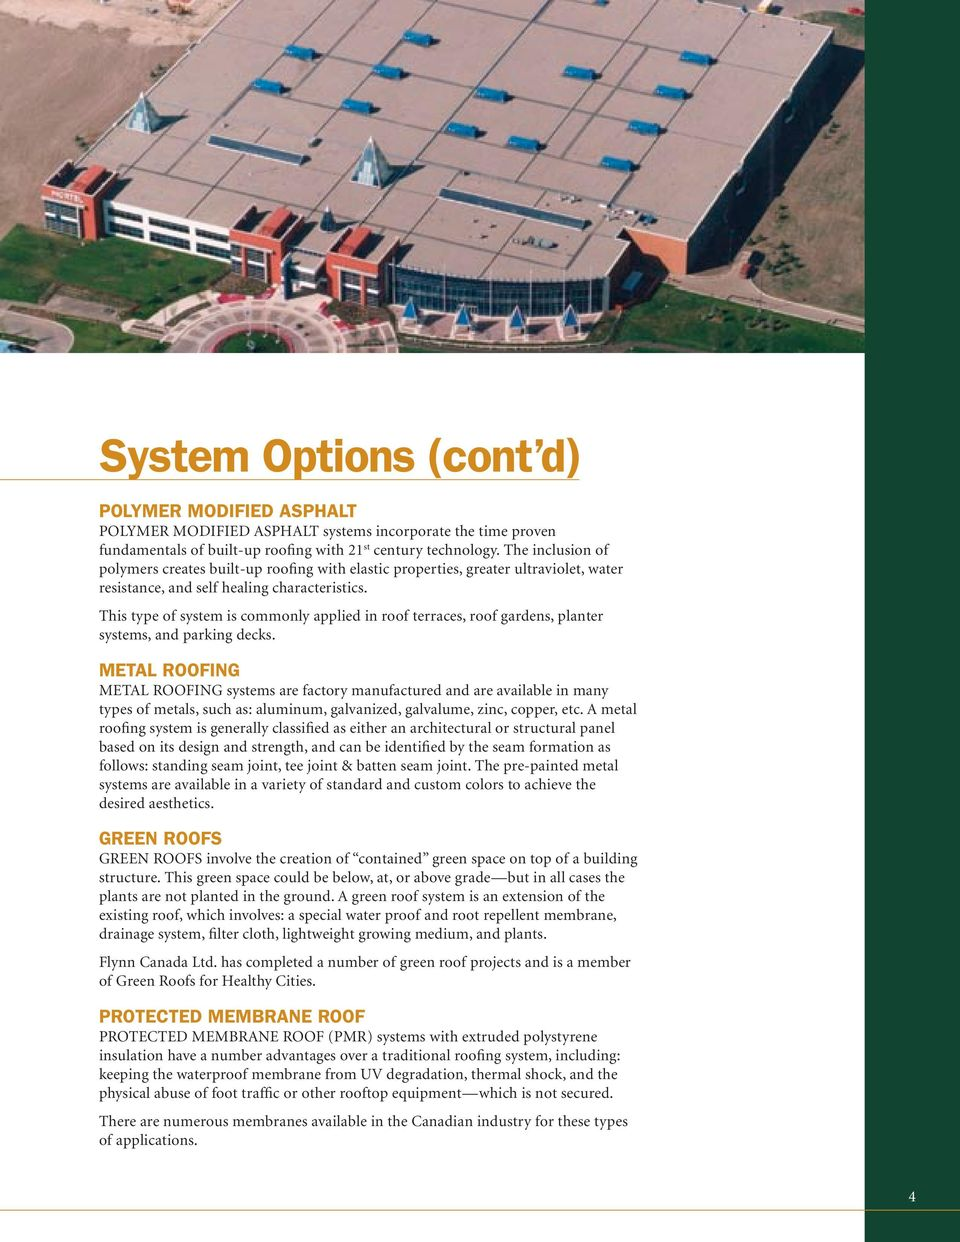 This type of system is commonly applied in roof terraces, roof gardens, planter systems, and parking decks.